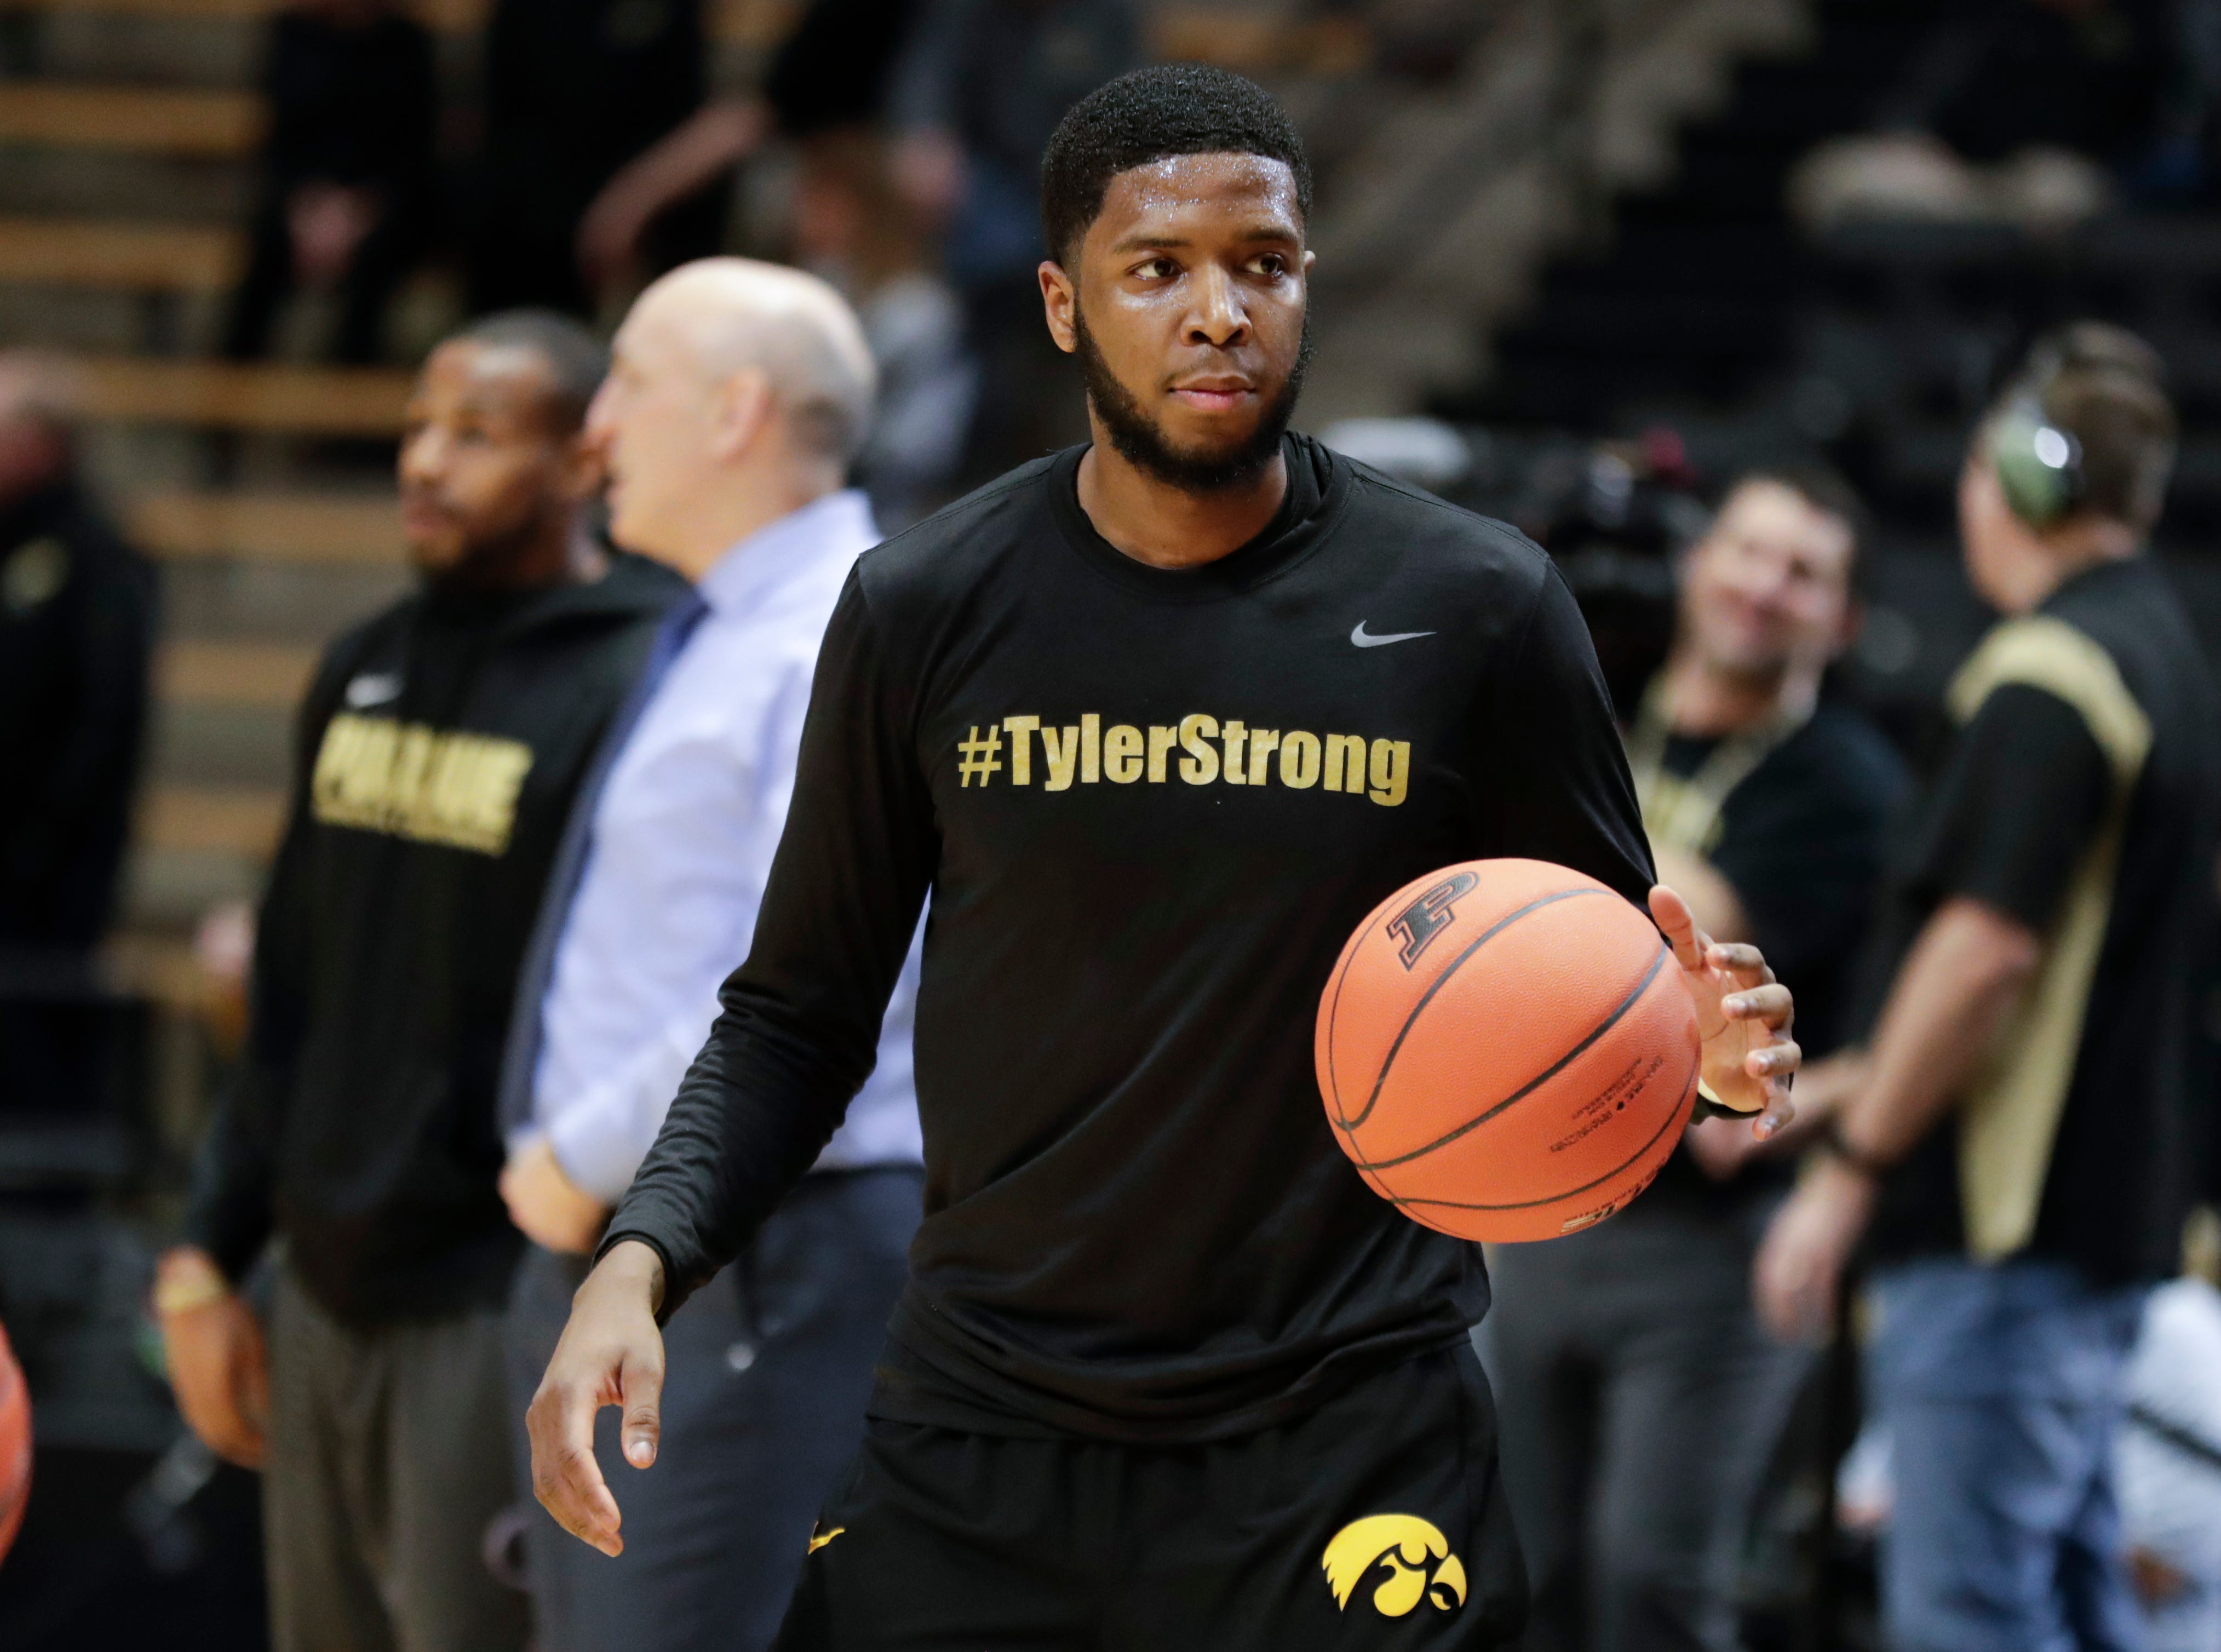 Iowa guard Isaiah Moss (4) wears a shirt honoring Tyler Trent before an NCAA college basketball game against Iowa in West Lafayette, Ind., Thursday, Jan. 3, 2019. Both Purdue and Iowa will pay their respects to late Boilermakers fan Tyler Trent on by wearing #TylerStrong T-shirts in his honor. Trent, a superfan who inspired people across the globe during his hard-fought battle with cancer, died this week. He was 20.